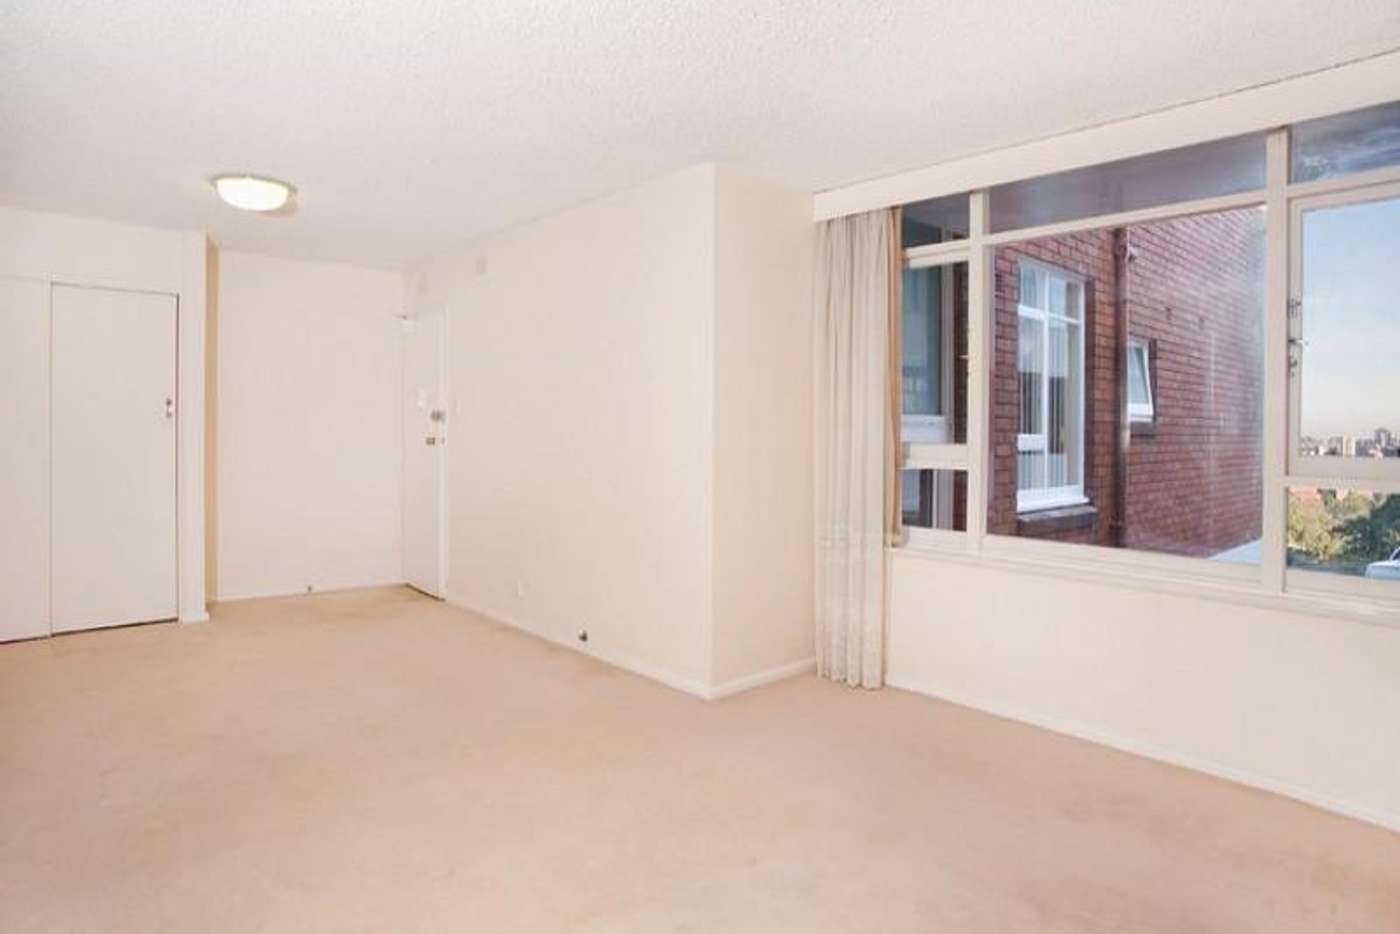 Main view of Homely apartment listing, 5/11 Merlin Street, Neutral Bay NSW 2089